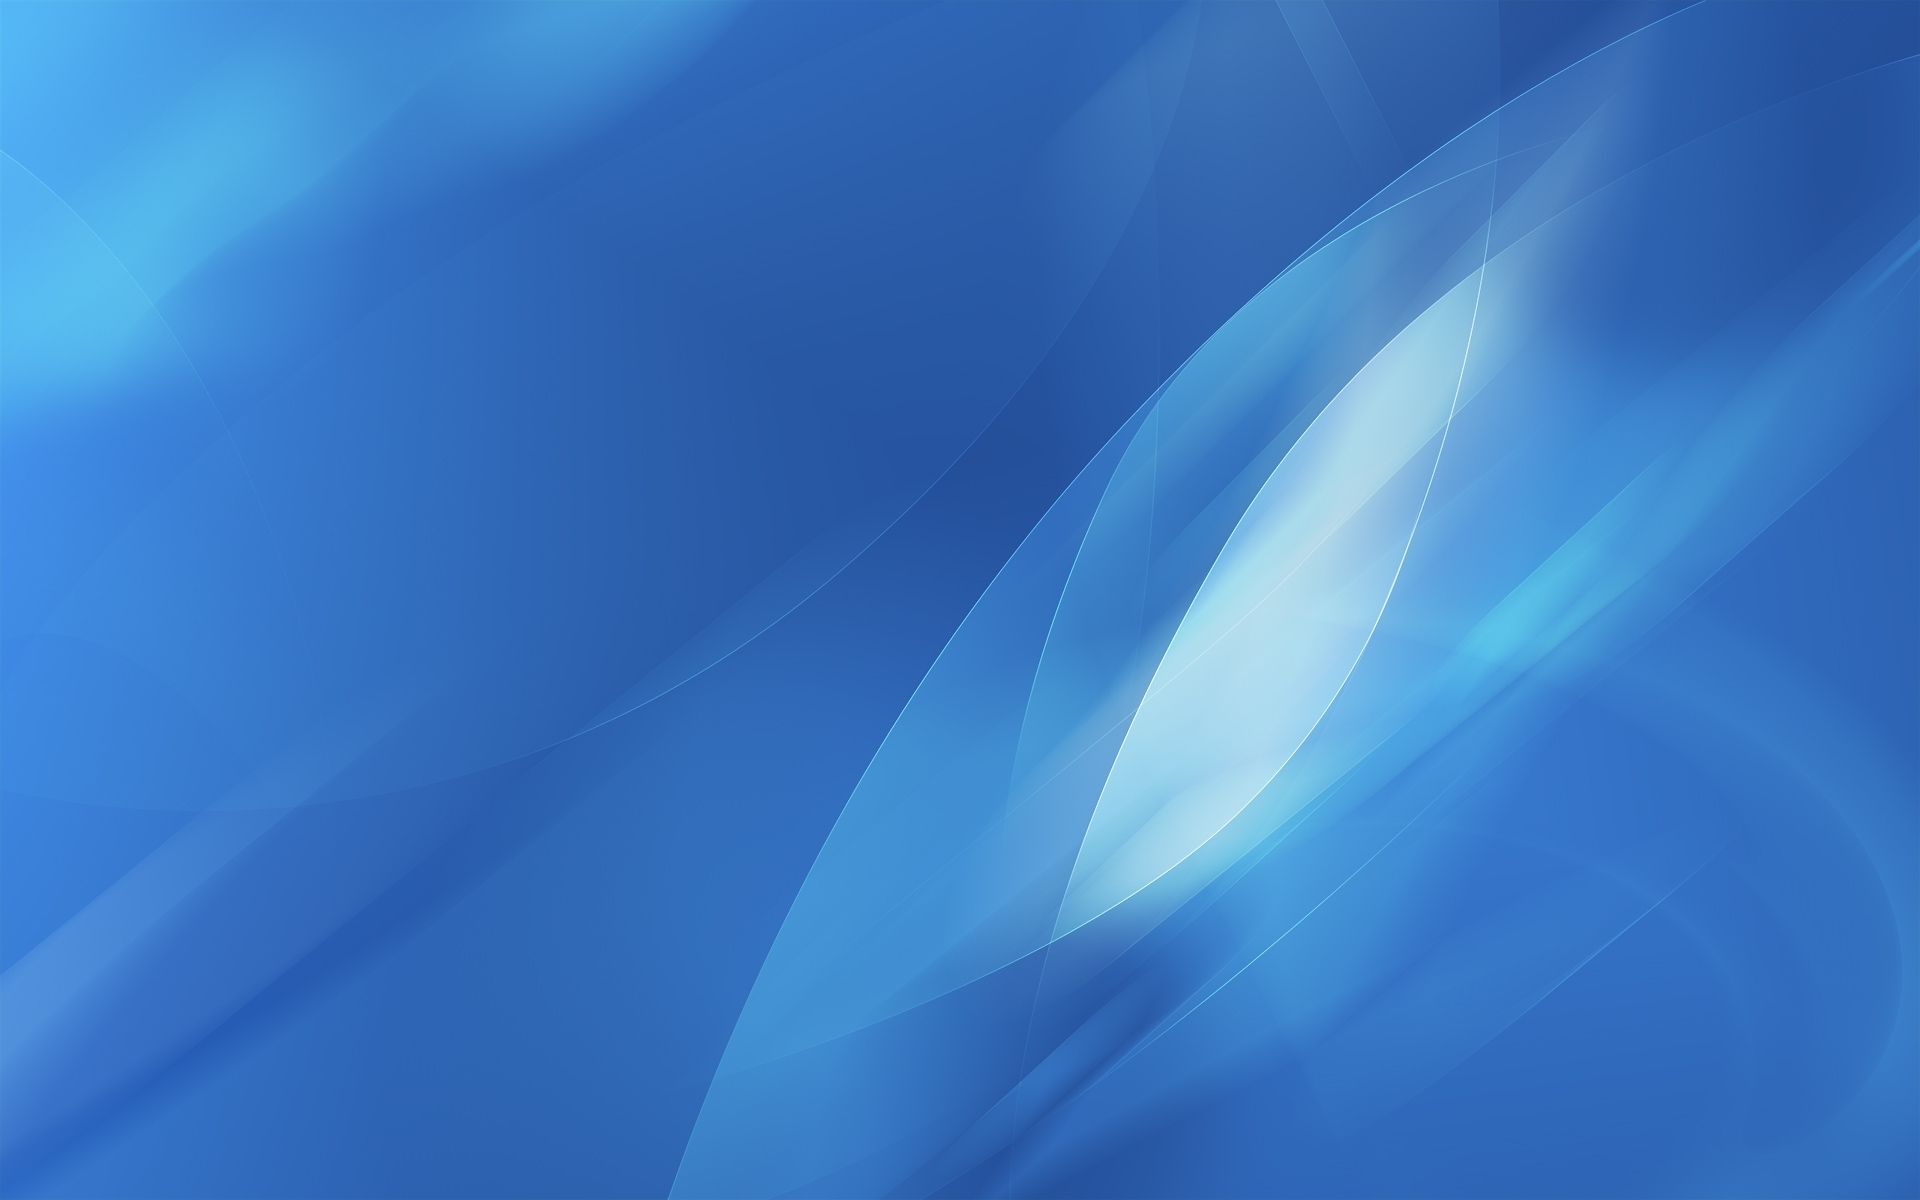 blue abstract desktop wallpaper